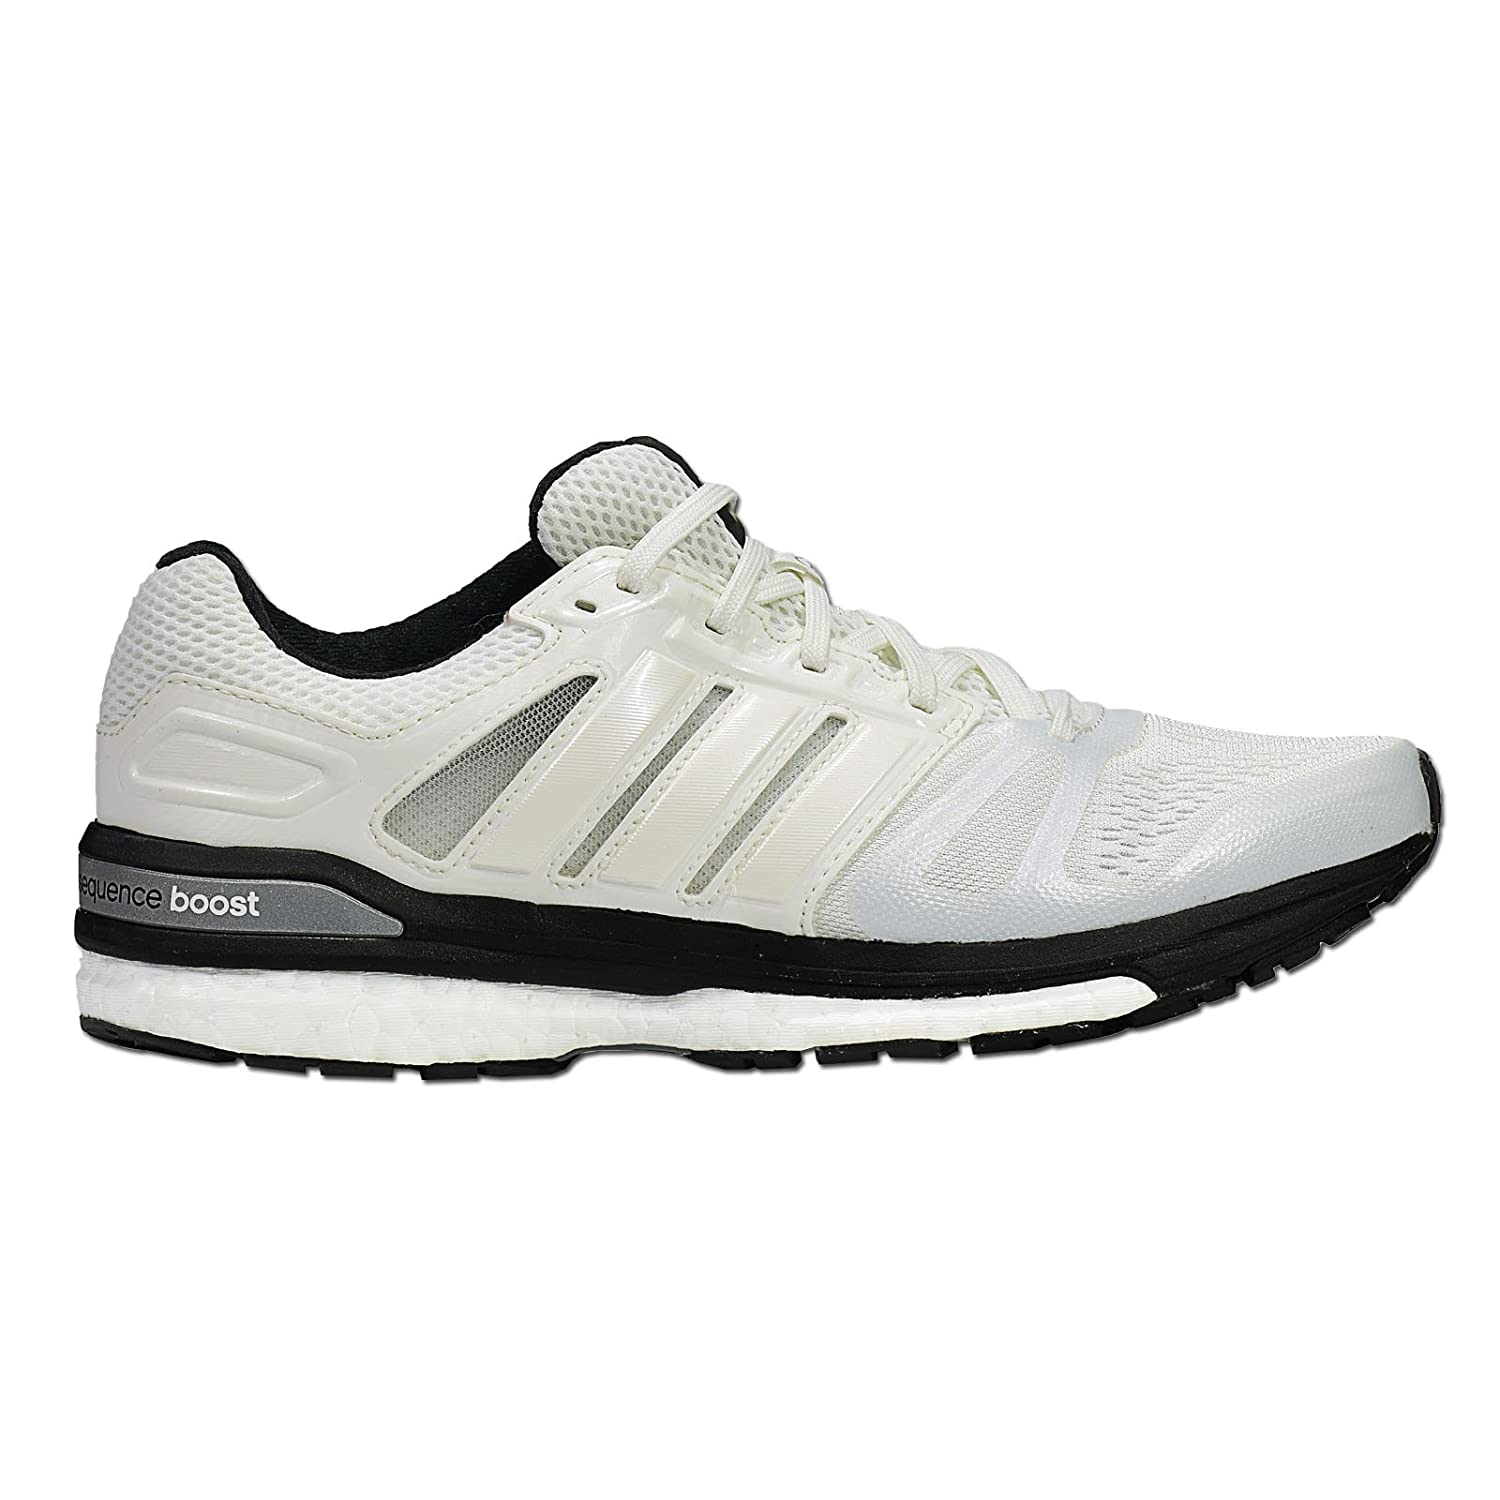 low priced d2f37 9bc46 adidas Womens Womens Supernova Sequence Running Shoes in White - UK 3.5   Amazon.co.uk  Shoes   Bags